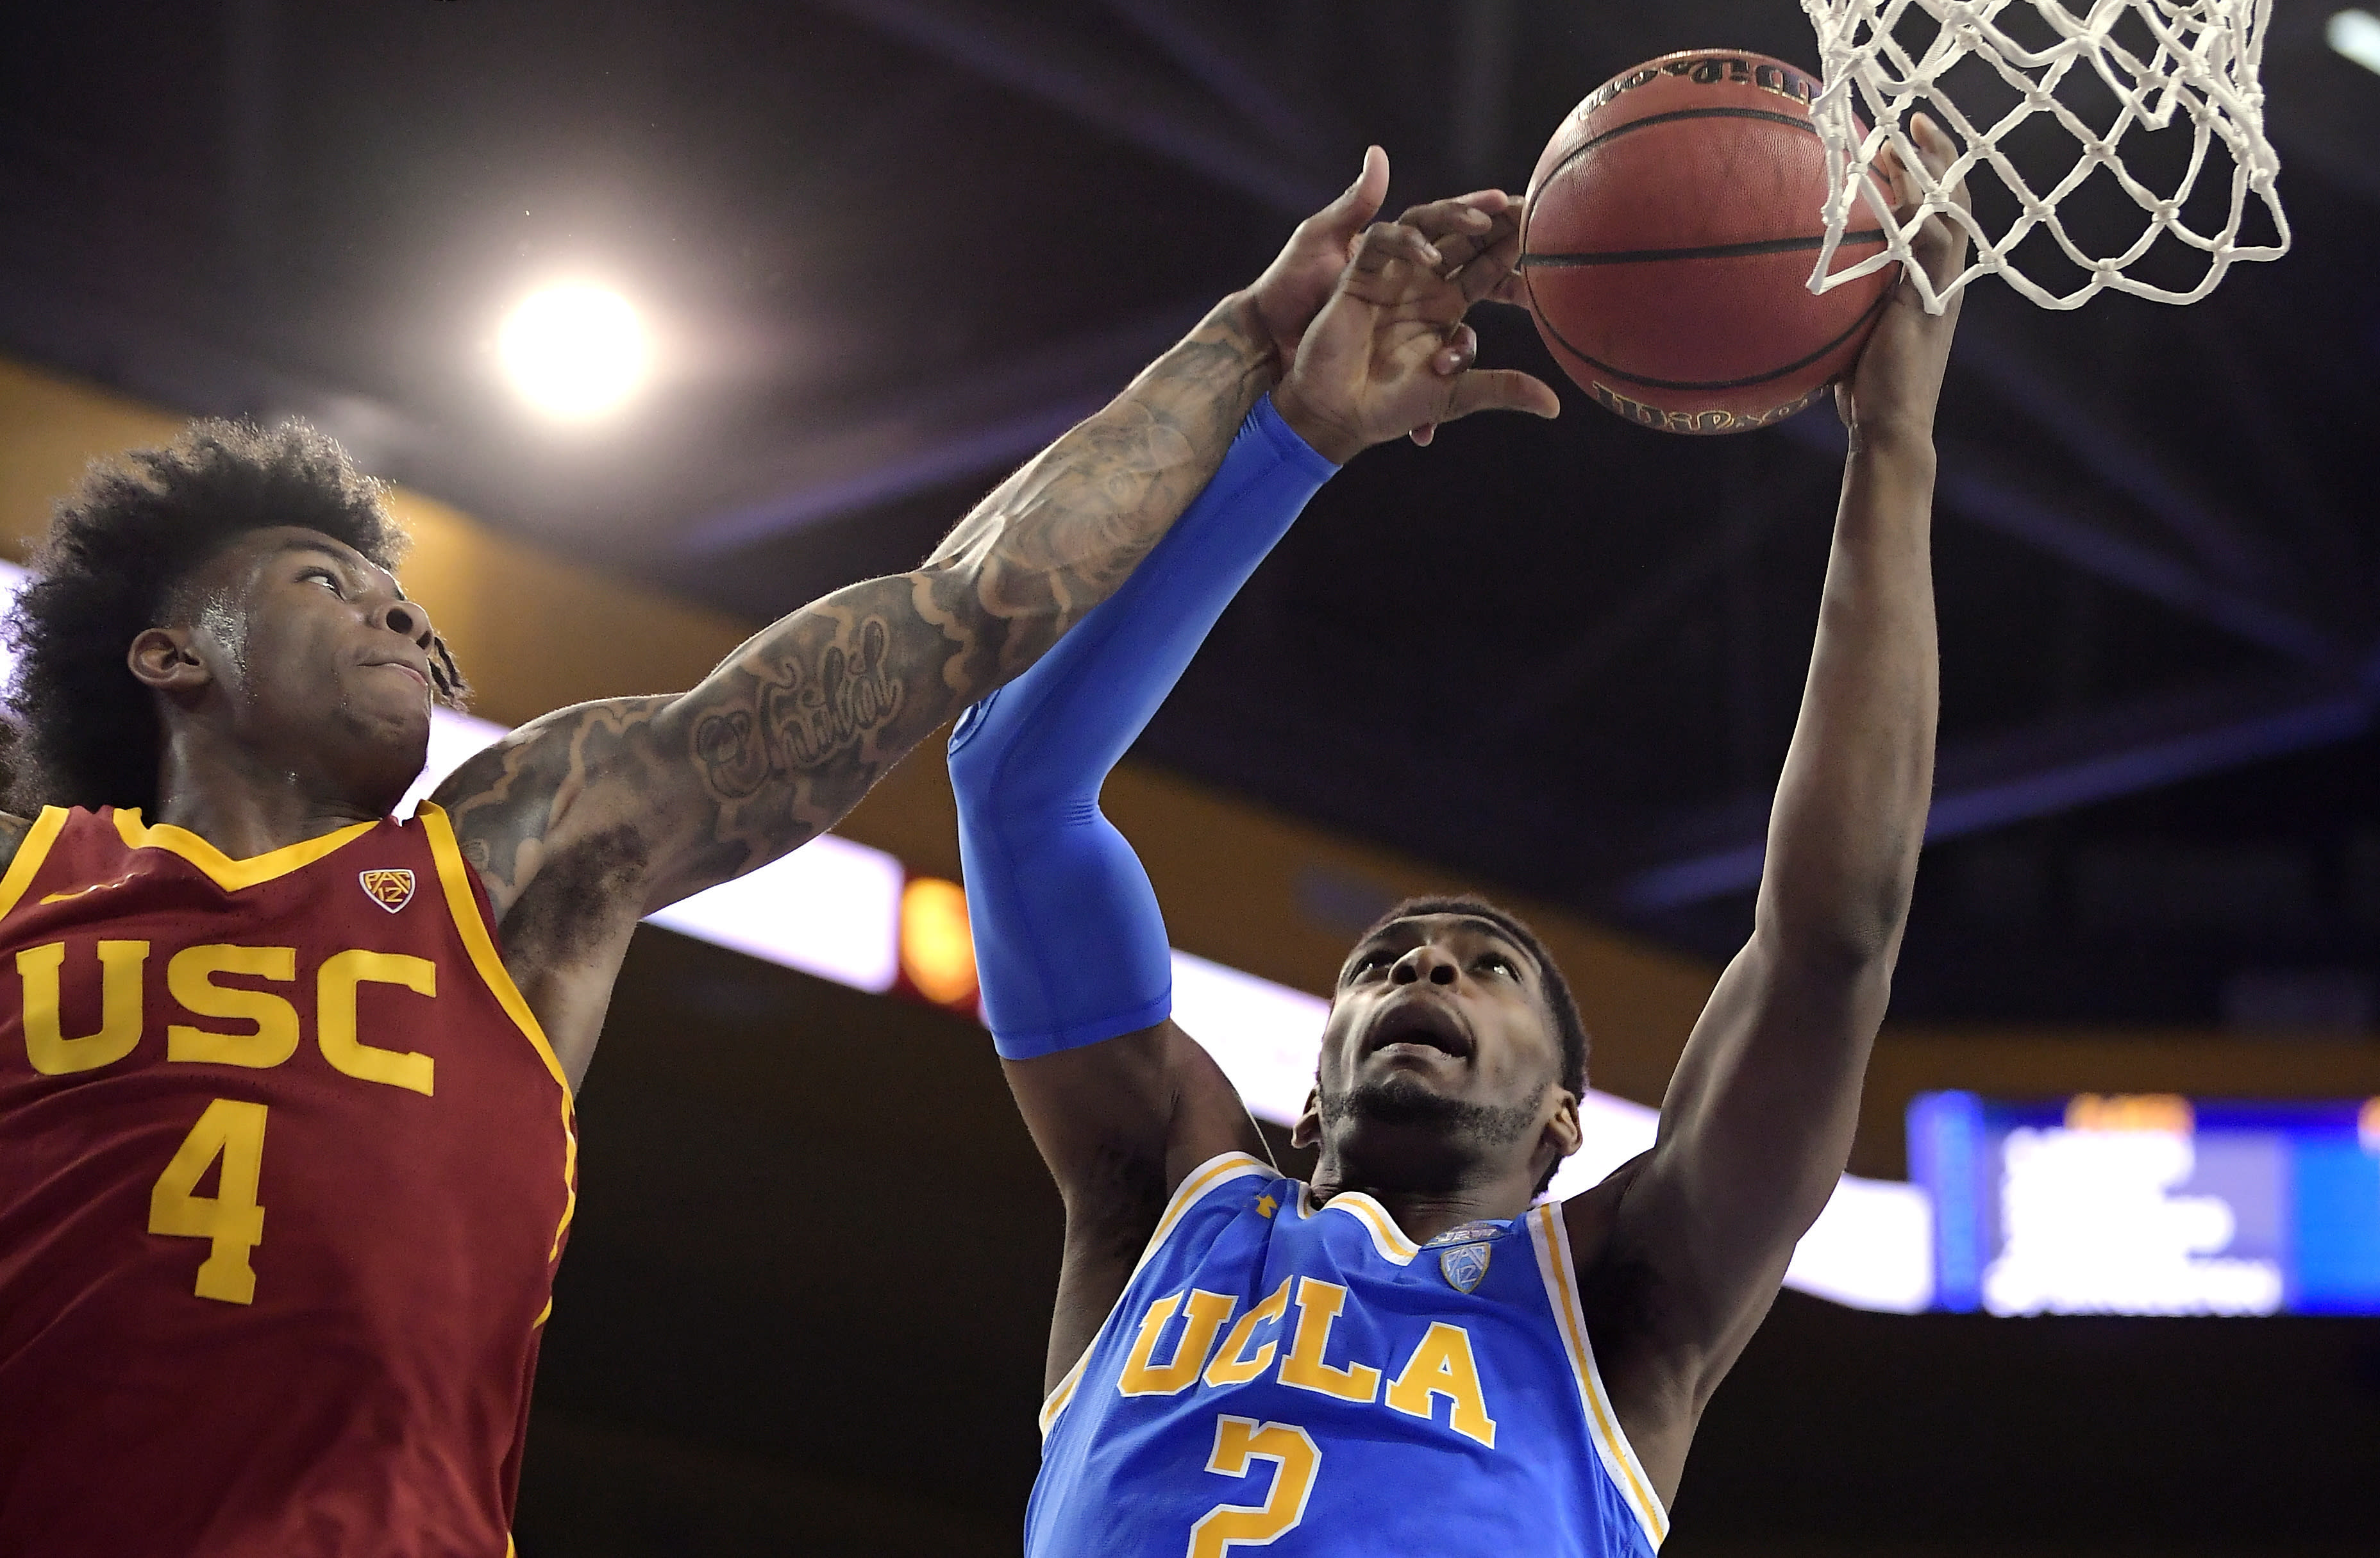 FILE - In this Feb. 28, 2019, file photo, UCLA forward Cody Riley, right, grabs a rebound away from Southern California guard Kevin Porter Jr. during the first half of an NCAA college basketball game in Los Angeles. The NCAA's Board of Governors is urging Gov. Gavin Newsom not to sign a California bill that would allow college athletes to receive money for their names, likenesses or images. In a six-paragraph letter to Newsom, the board said the bill would give California schools an unfair recruiting advantage. As a result, the letter says, the NCAA would declare those schools ineligible for its events. (AP Photo/Mark J. Terrill, File)